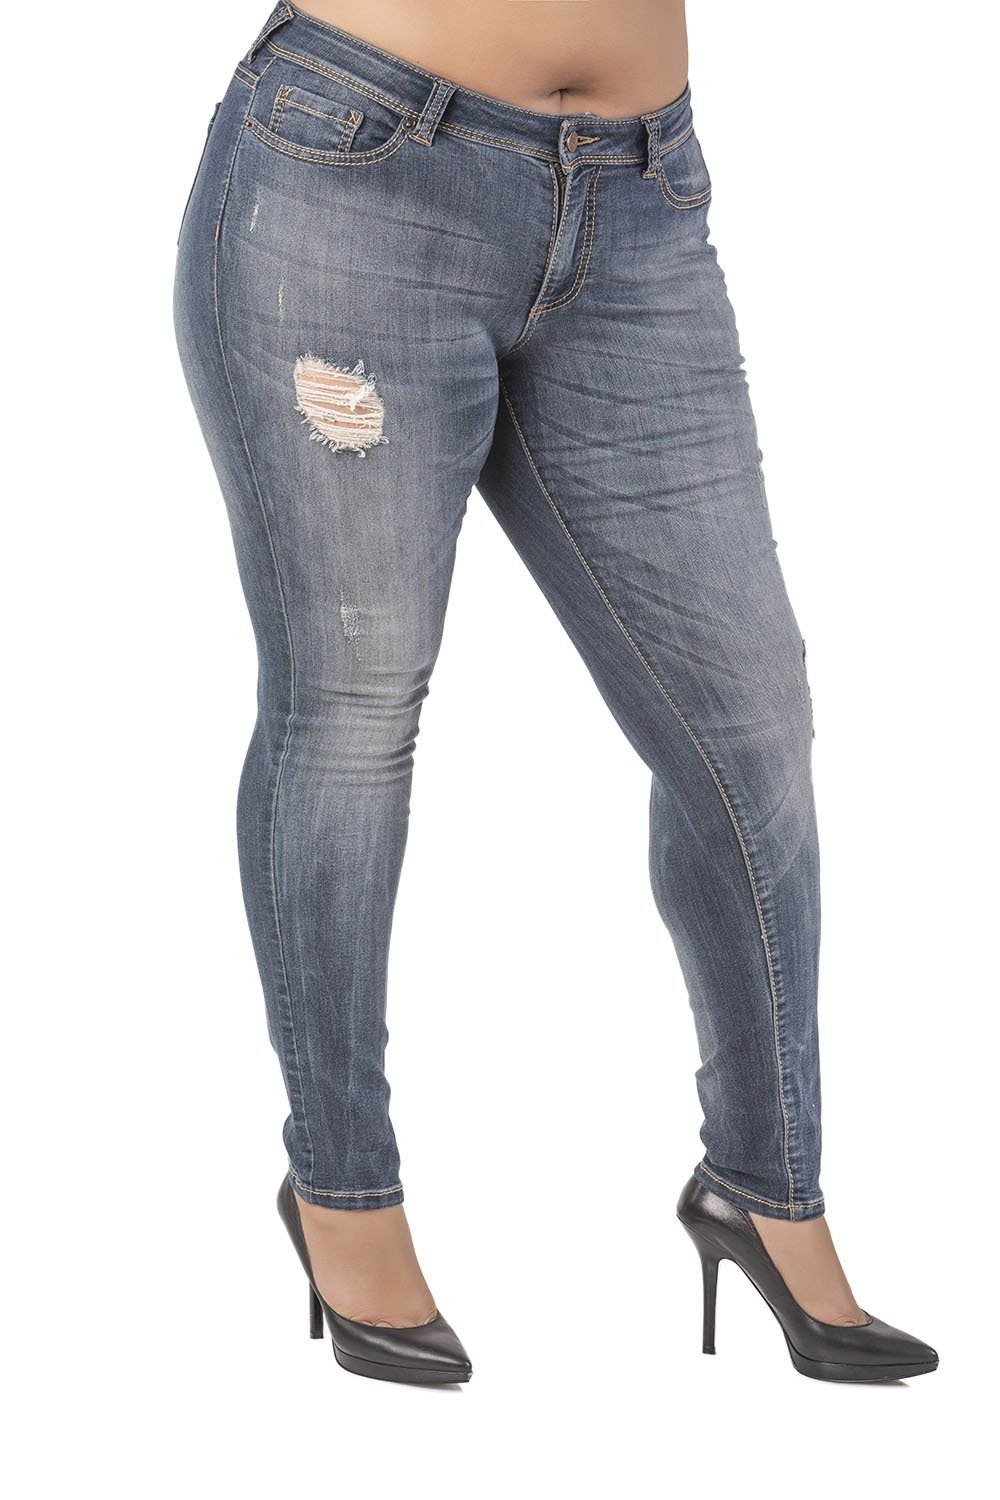 Poetic Justice Plus Size Women's Curvy Fit Blue Vintage Wash Destroyed Skinny Jeans Size 20 x 32Length